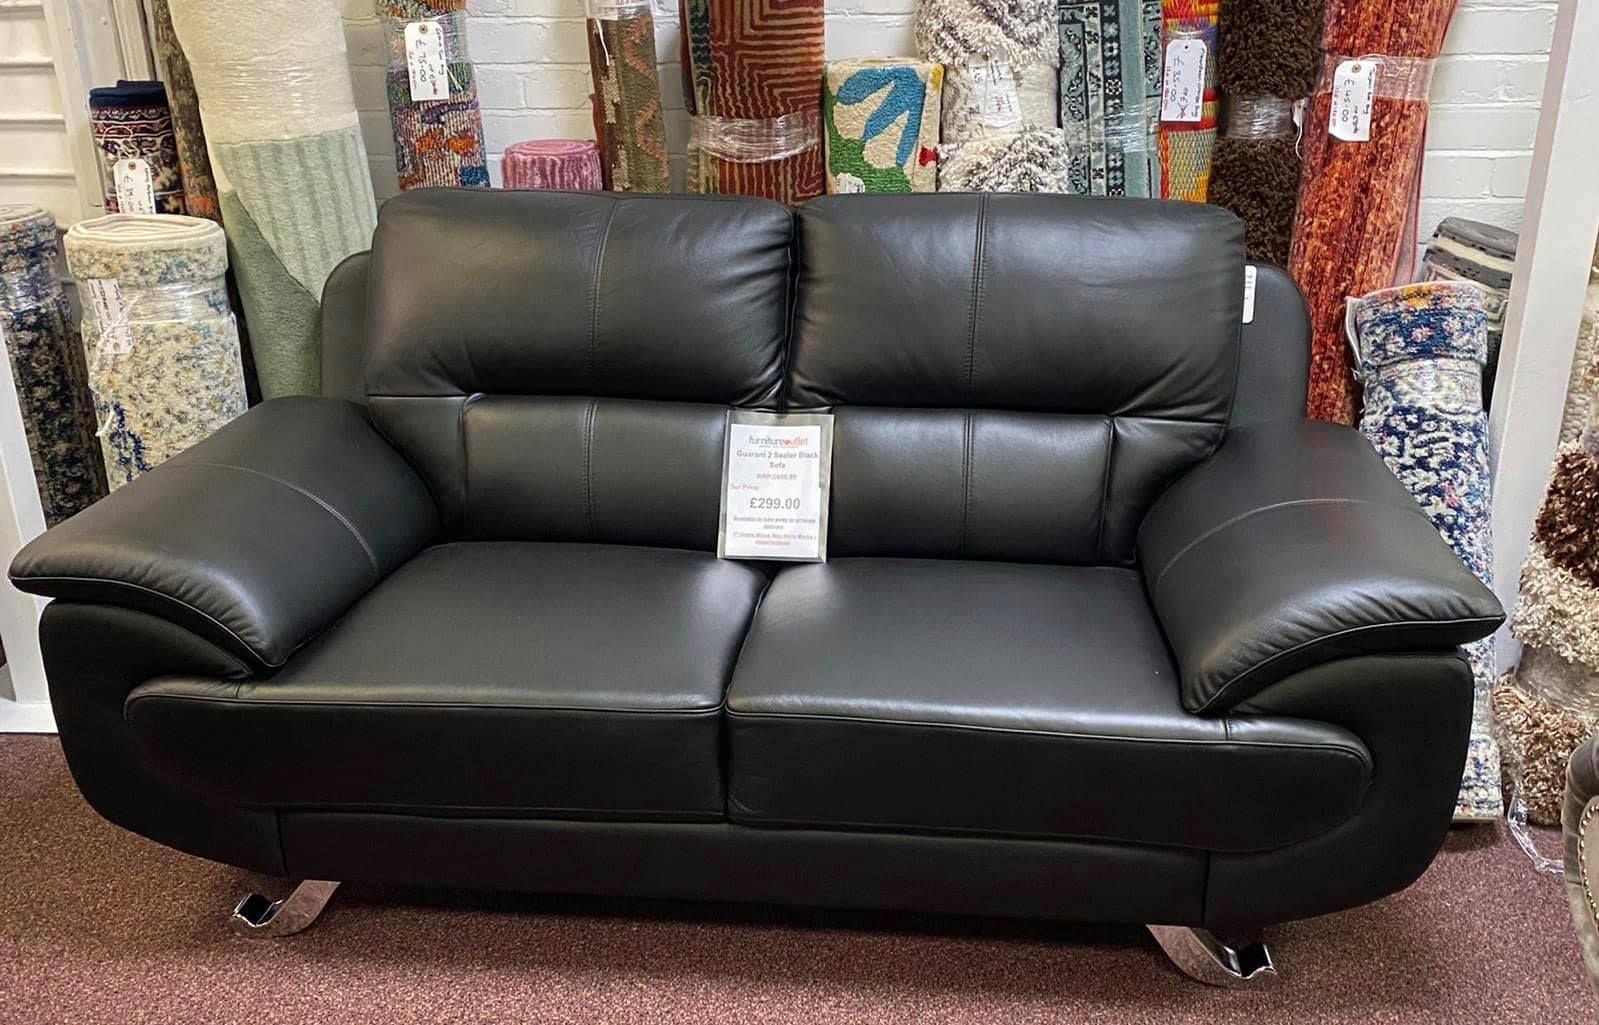 Black Sofas / Black Settees #furnitureoutletstores Furniture Outlet Stores - Wickford #sofa #settee #couch #blacksofa #blacksettee #blackcouch #livingroom #sofadeal #sofadeals #sofafind #sofainspo #sofasale #sofaclearance #sofaoutlet #rug #rugs #essexhome #essexhomes #shoplocal